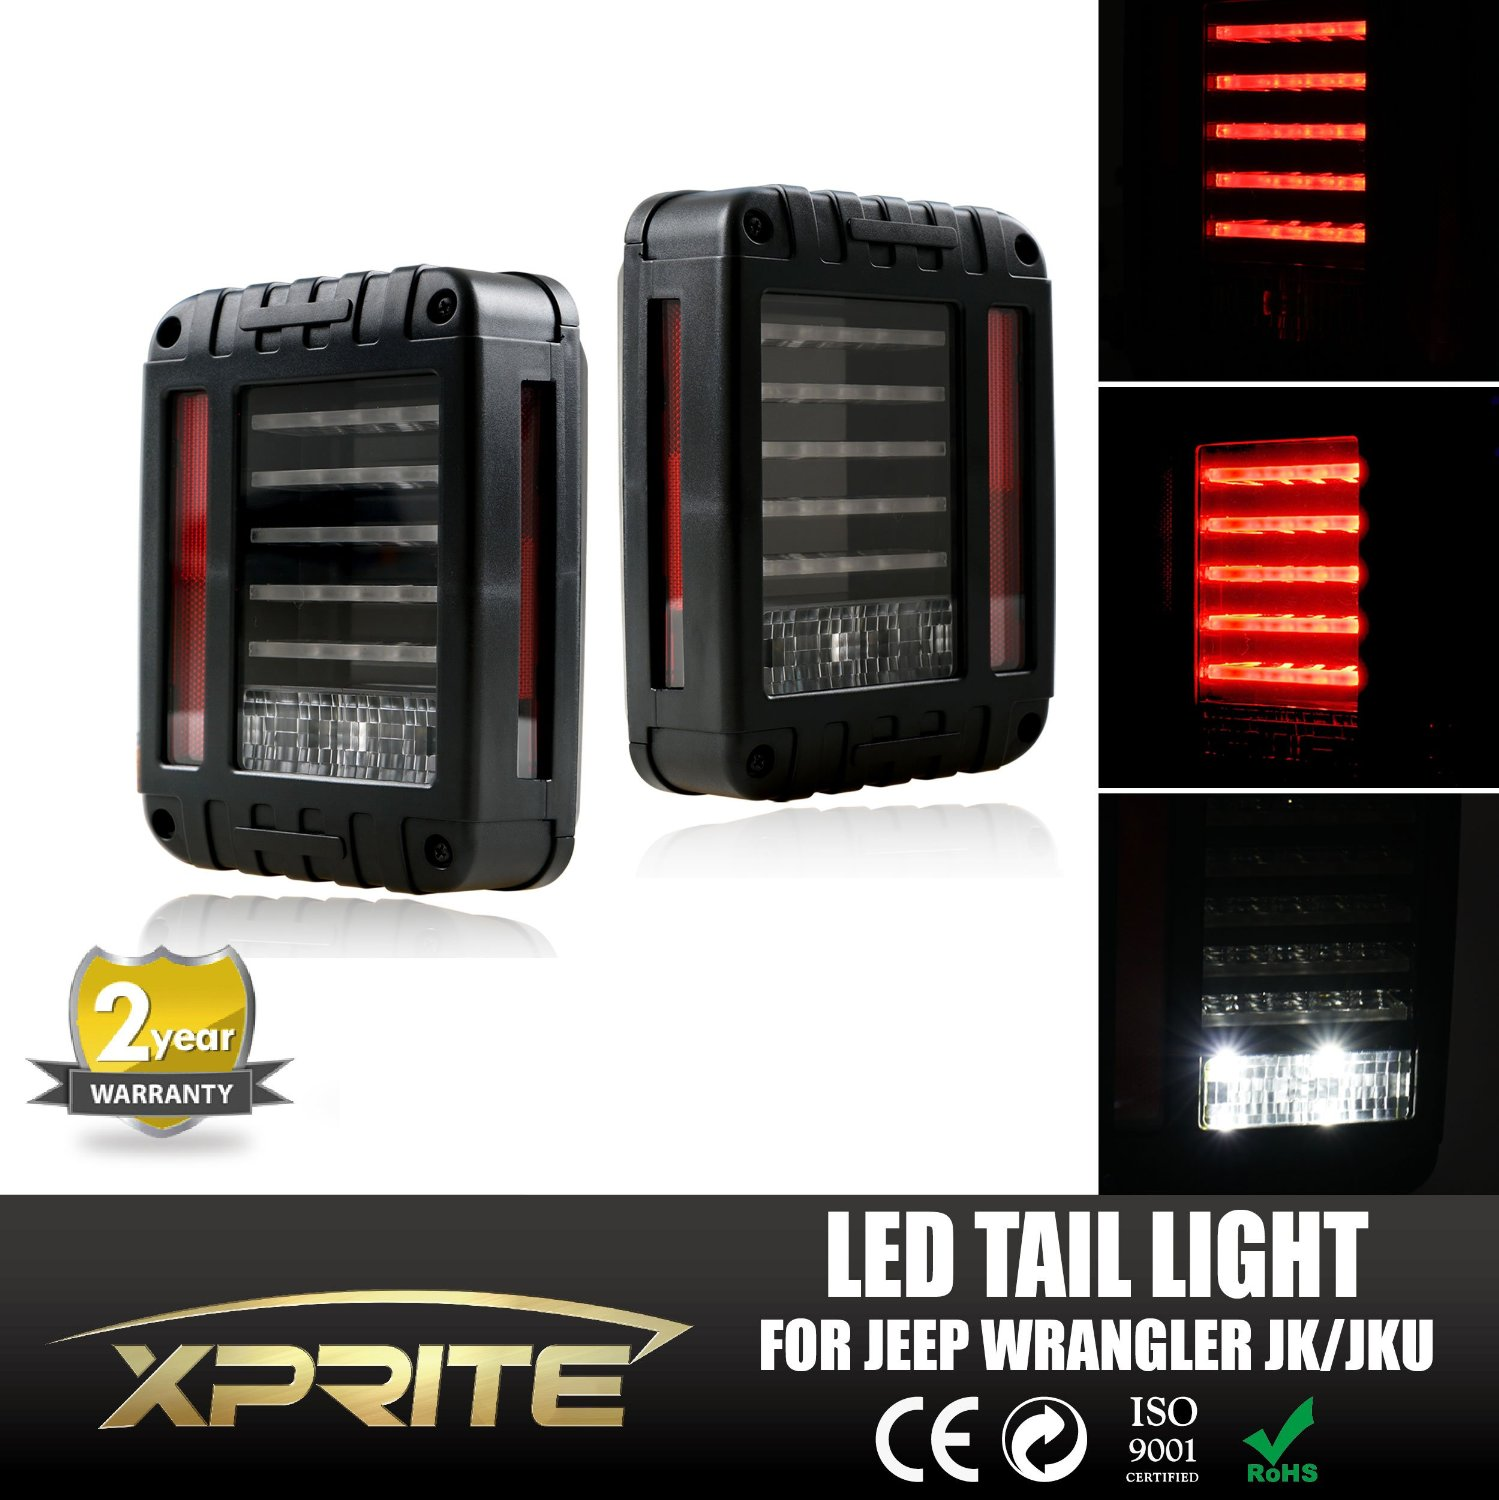 Xprite G2 Series Clear Lens Red LED Tail Light Assembly w/ Turn Signal & Back Up For Jeep Wrangler JK JKU 2007 - 2017